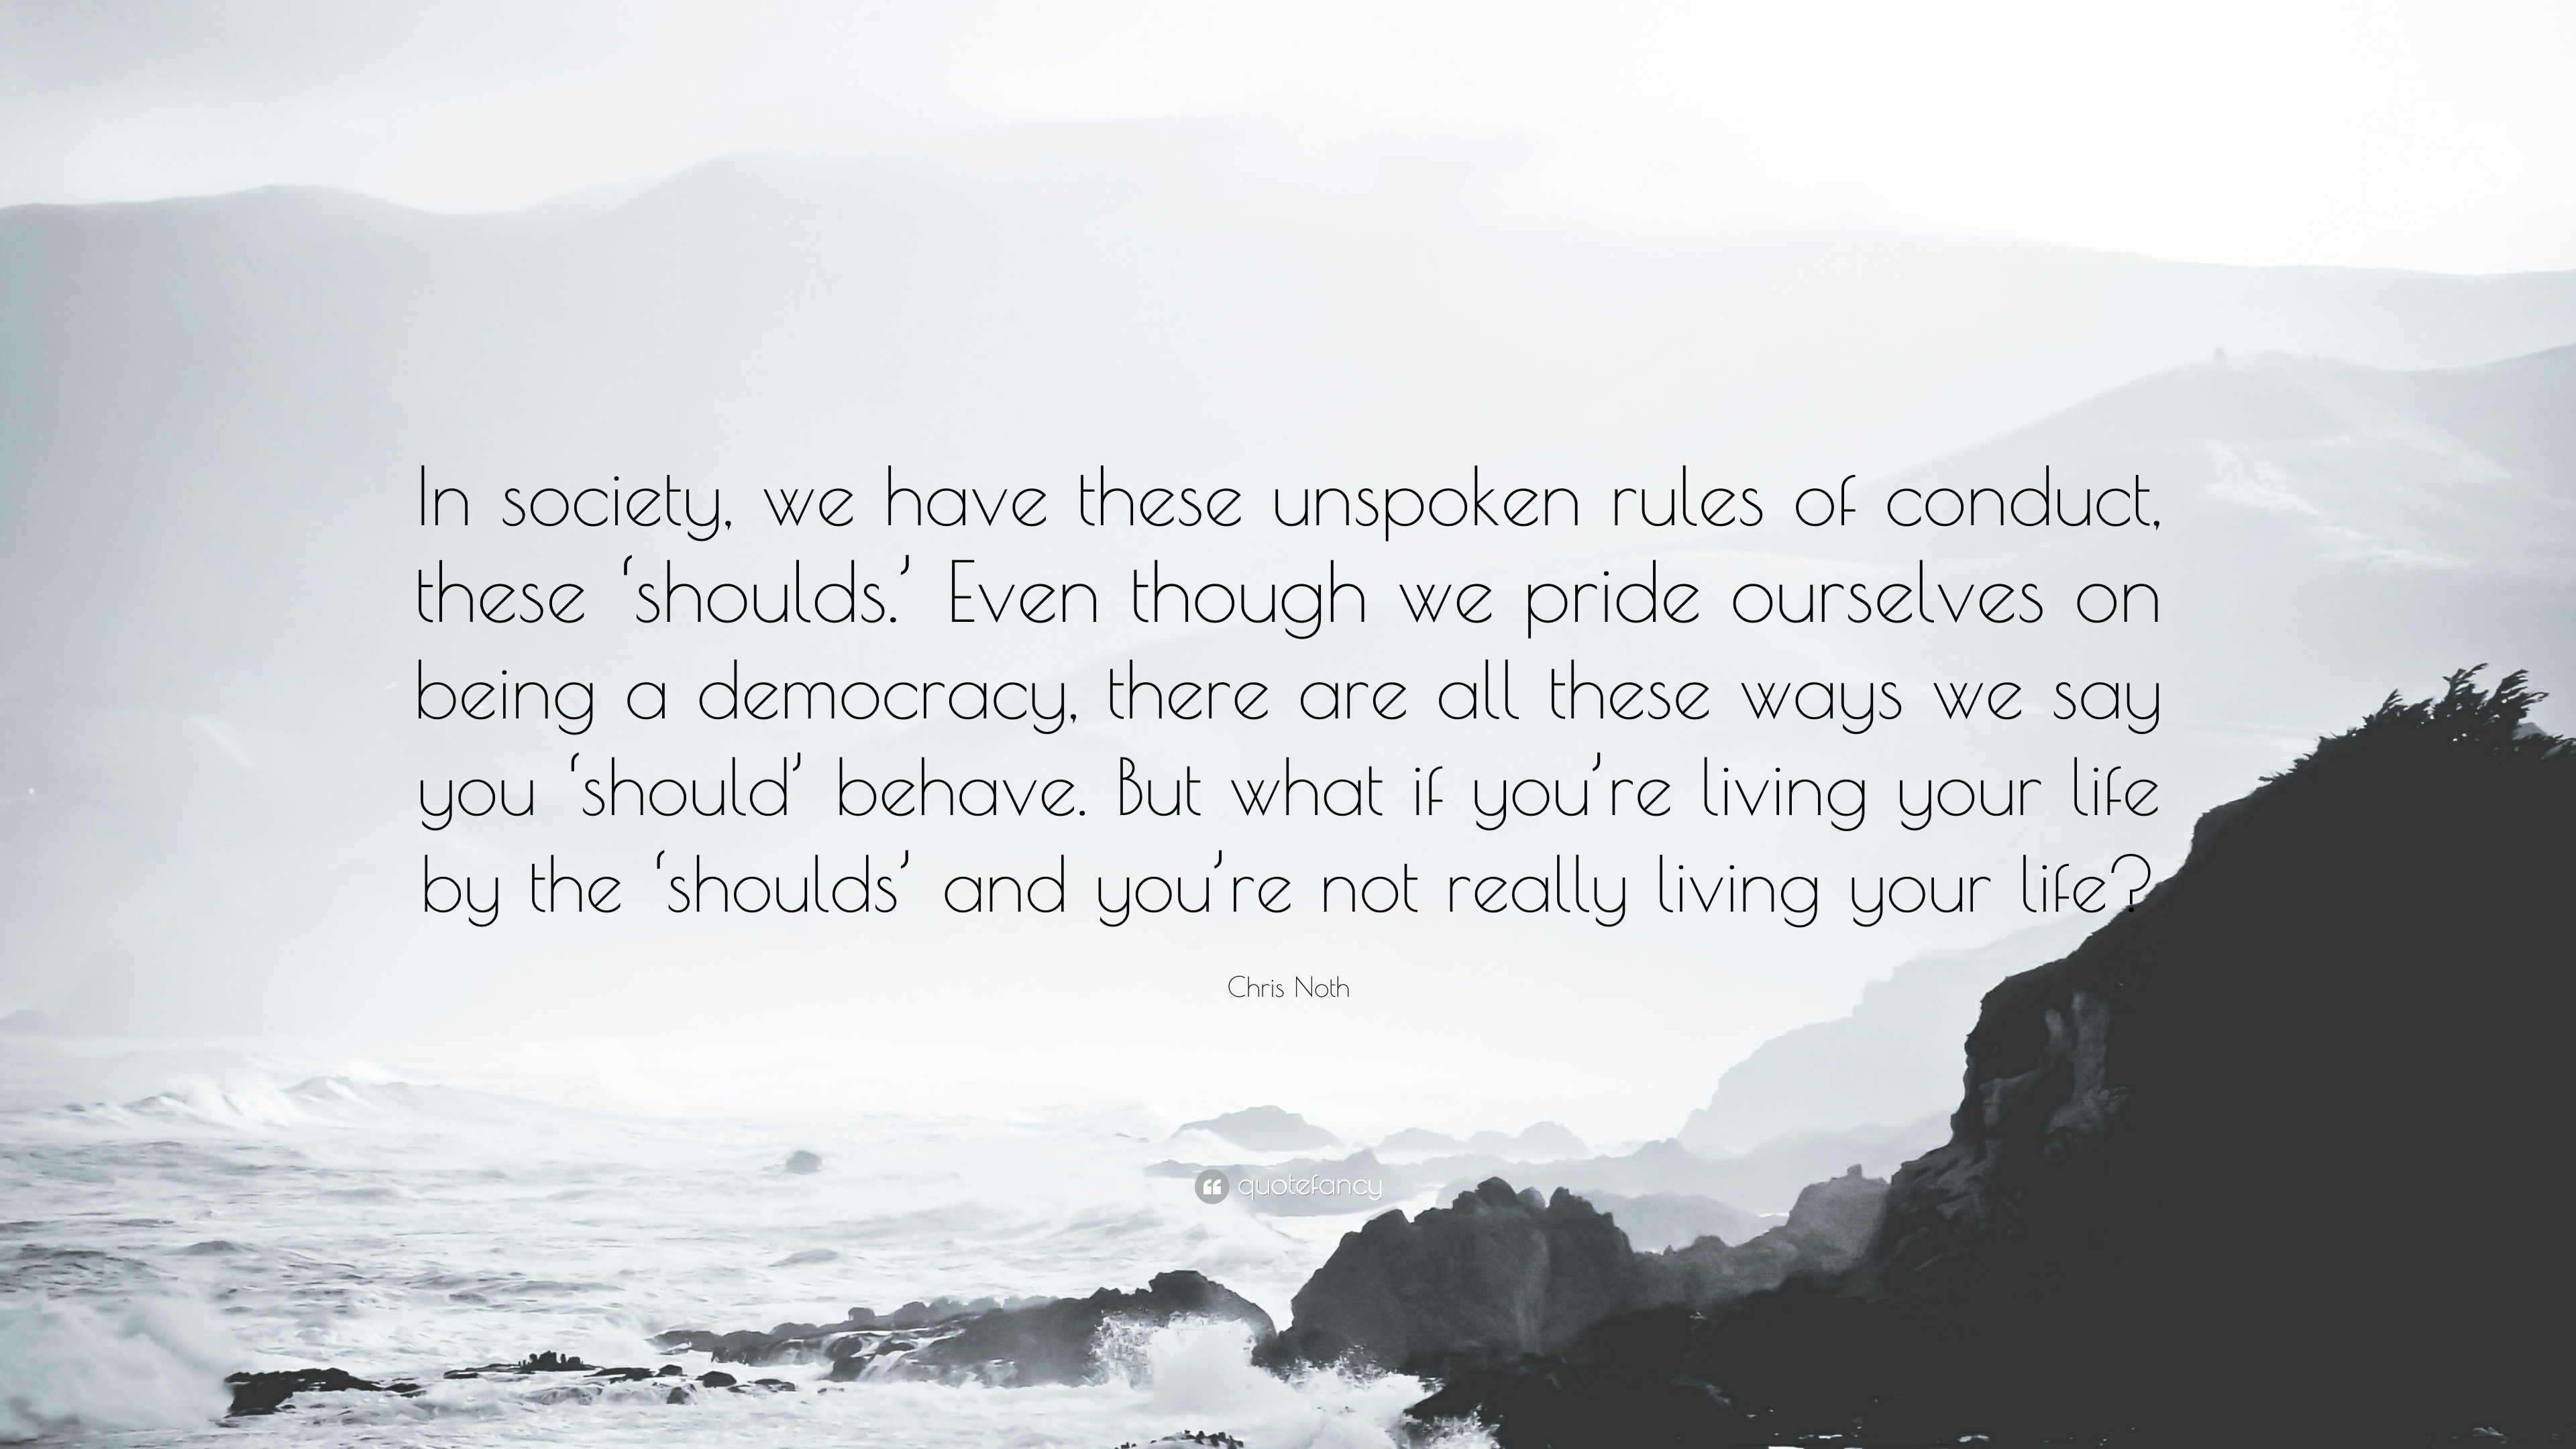 Unspoken rules of society